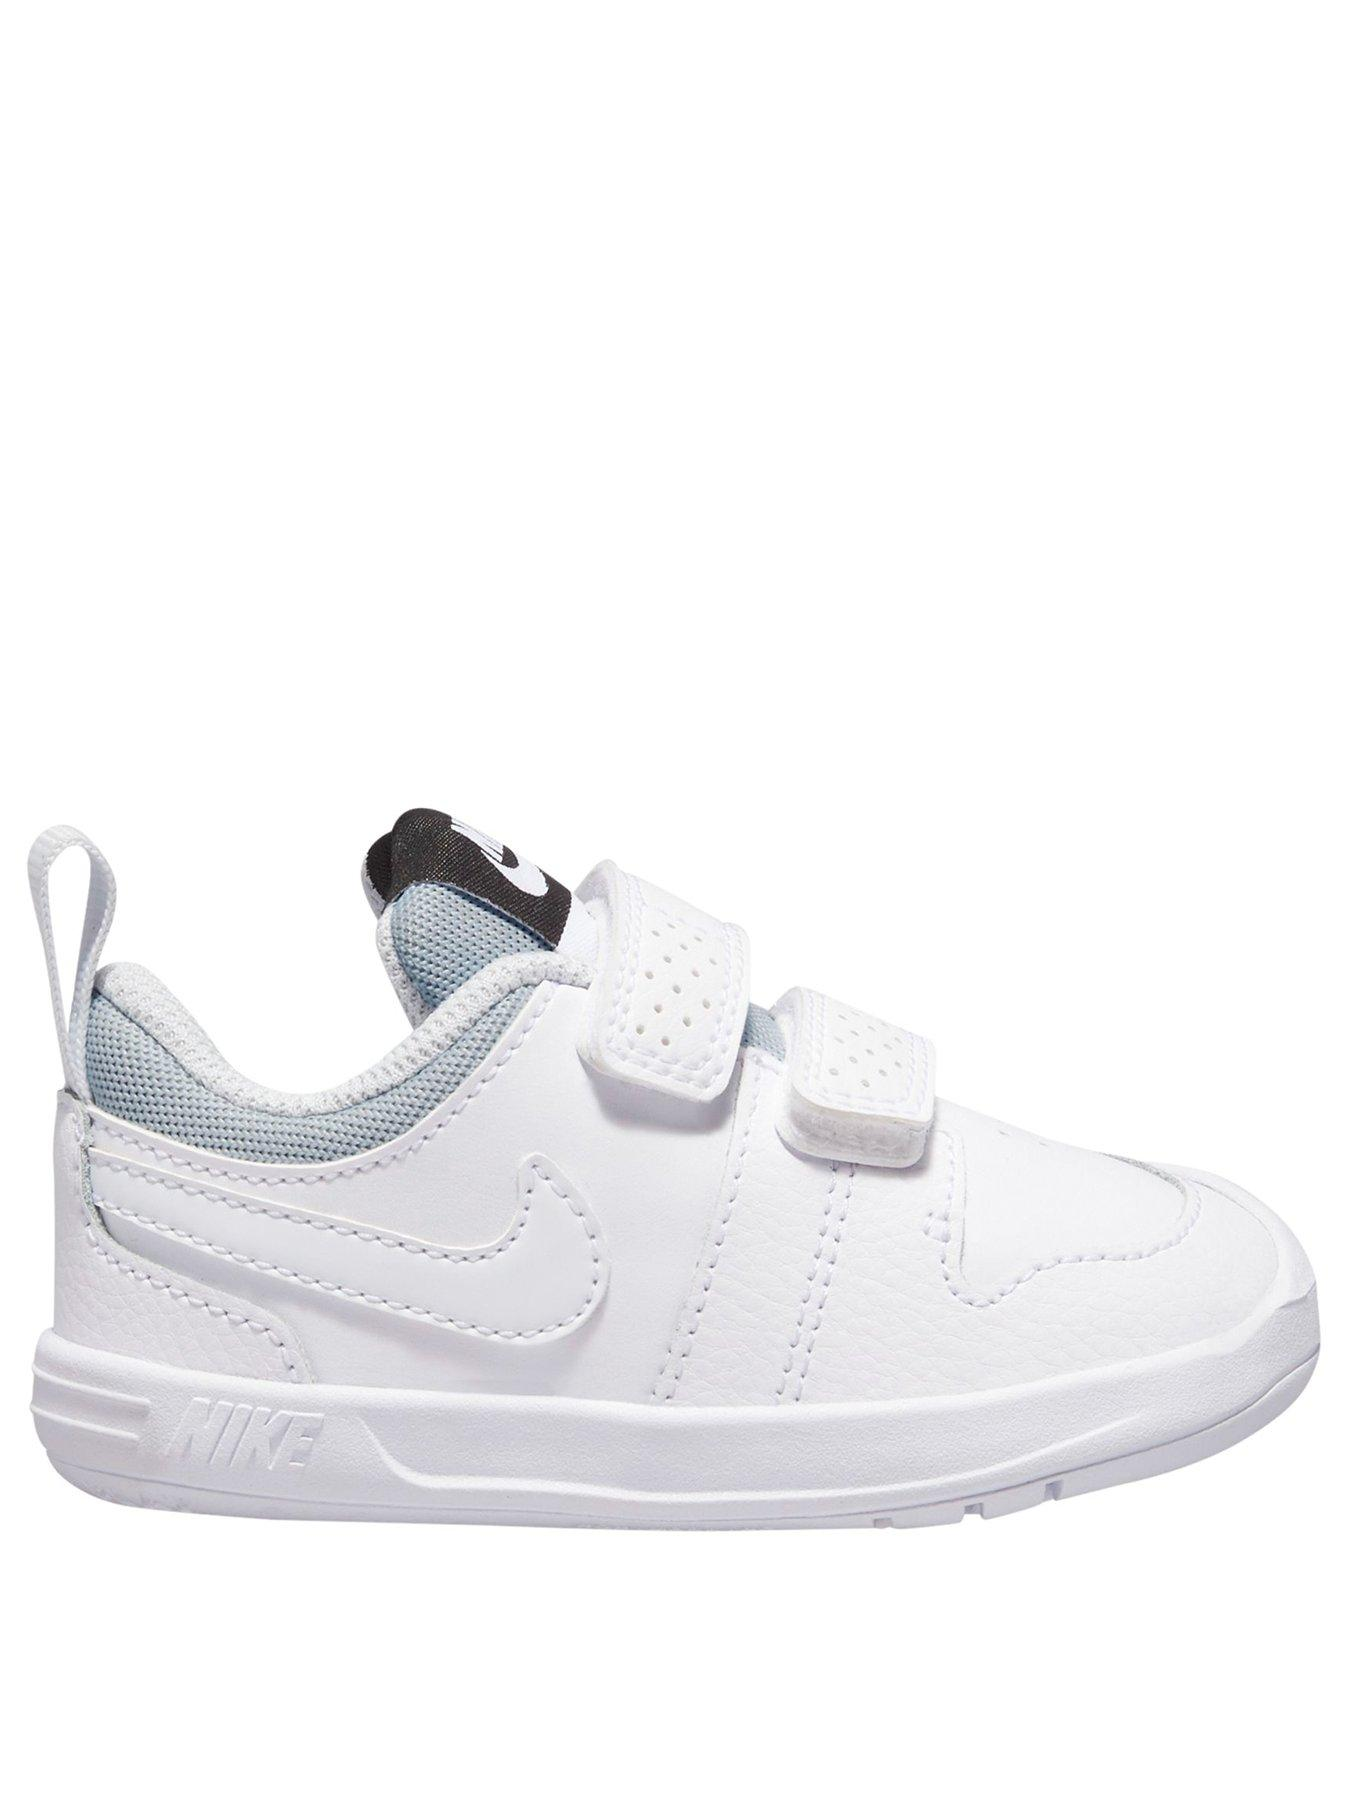 Infant footwear (sizes 0 9) | Kids & baby sports shoes